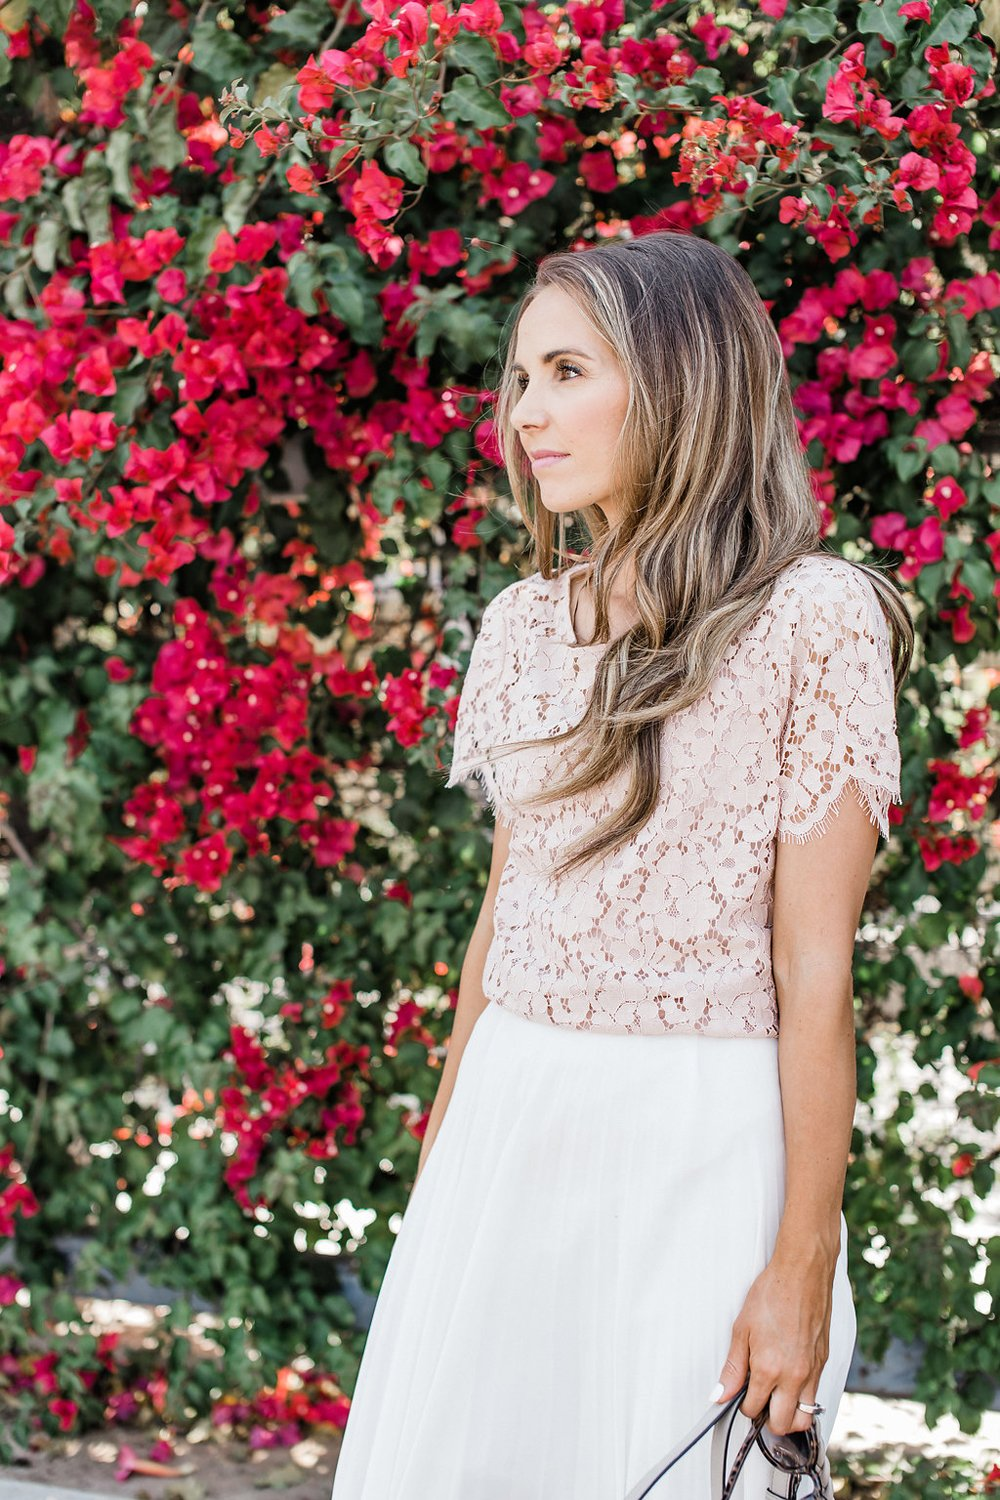 Merrick's Art Blush Lace and White Pleats